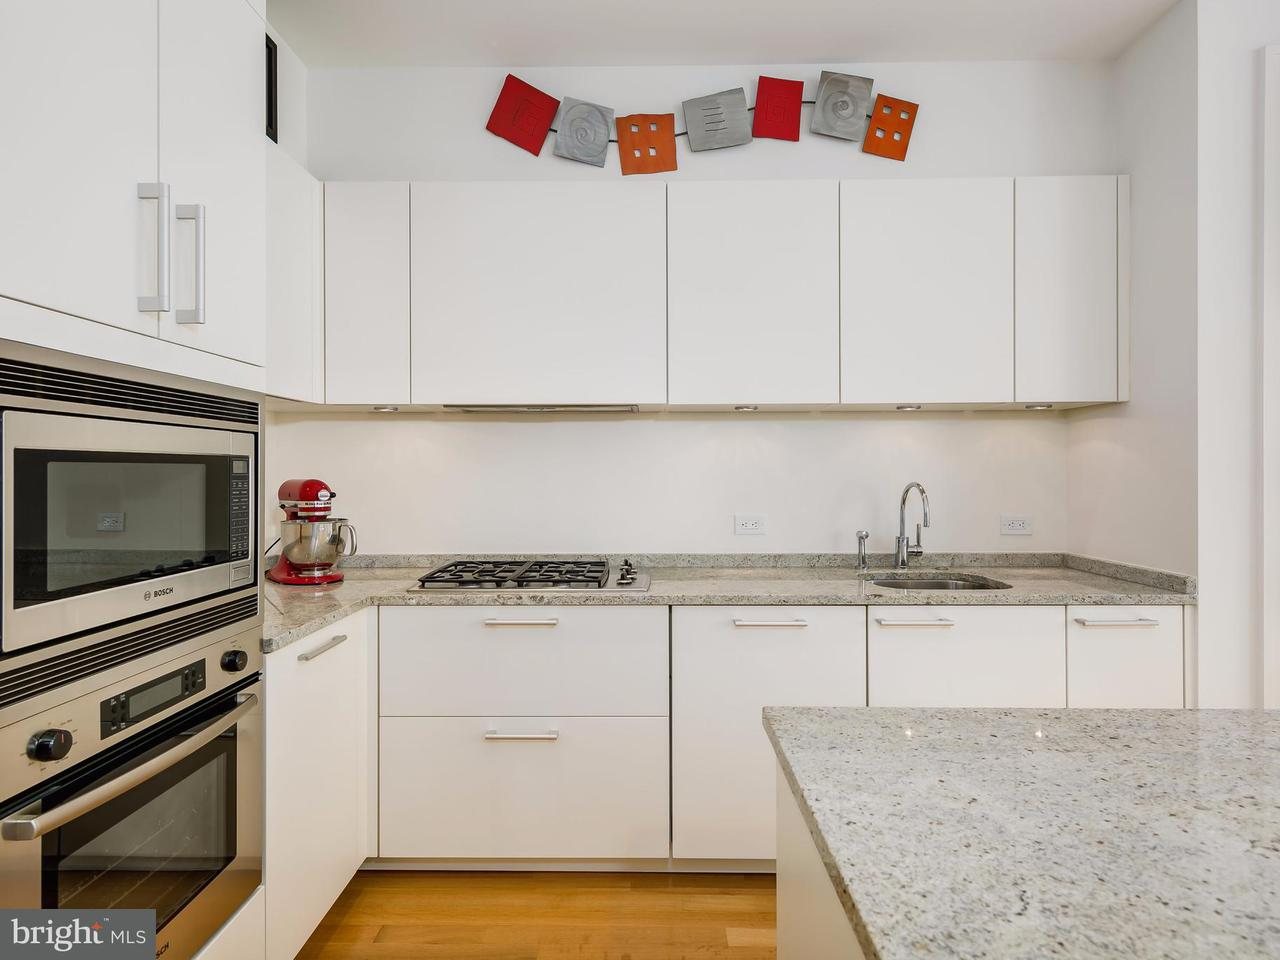 Additional photo for property listing at 1177 22nd St Nw #4e 1177 22nd St Nw #4e Washington, District Of Columbia 20037 Vereinigte Staaten